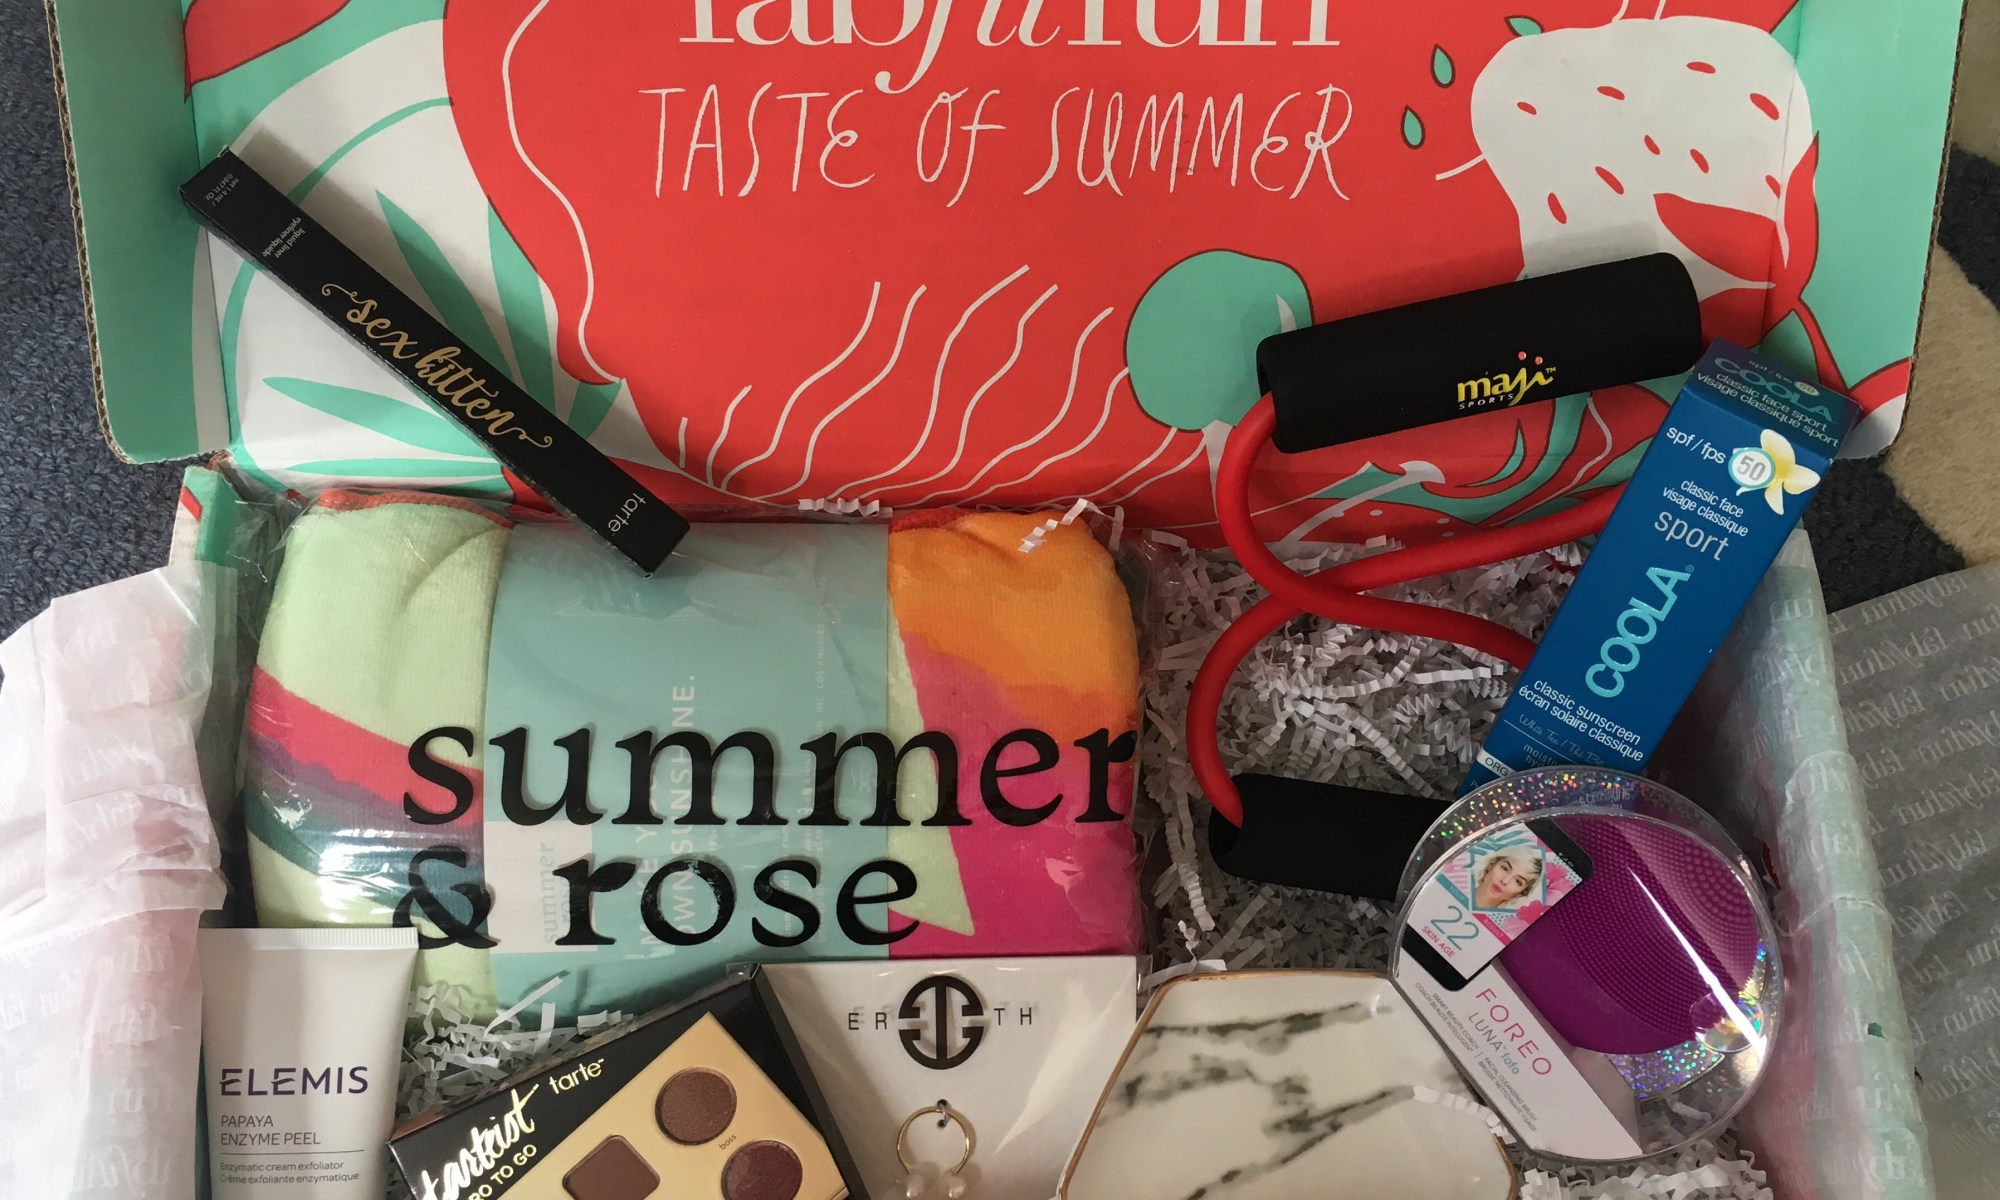 fabfitfun summer box 2018 review - $10 coupon code - scsscoop.com